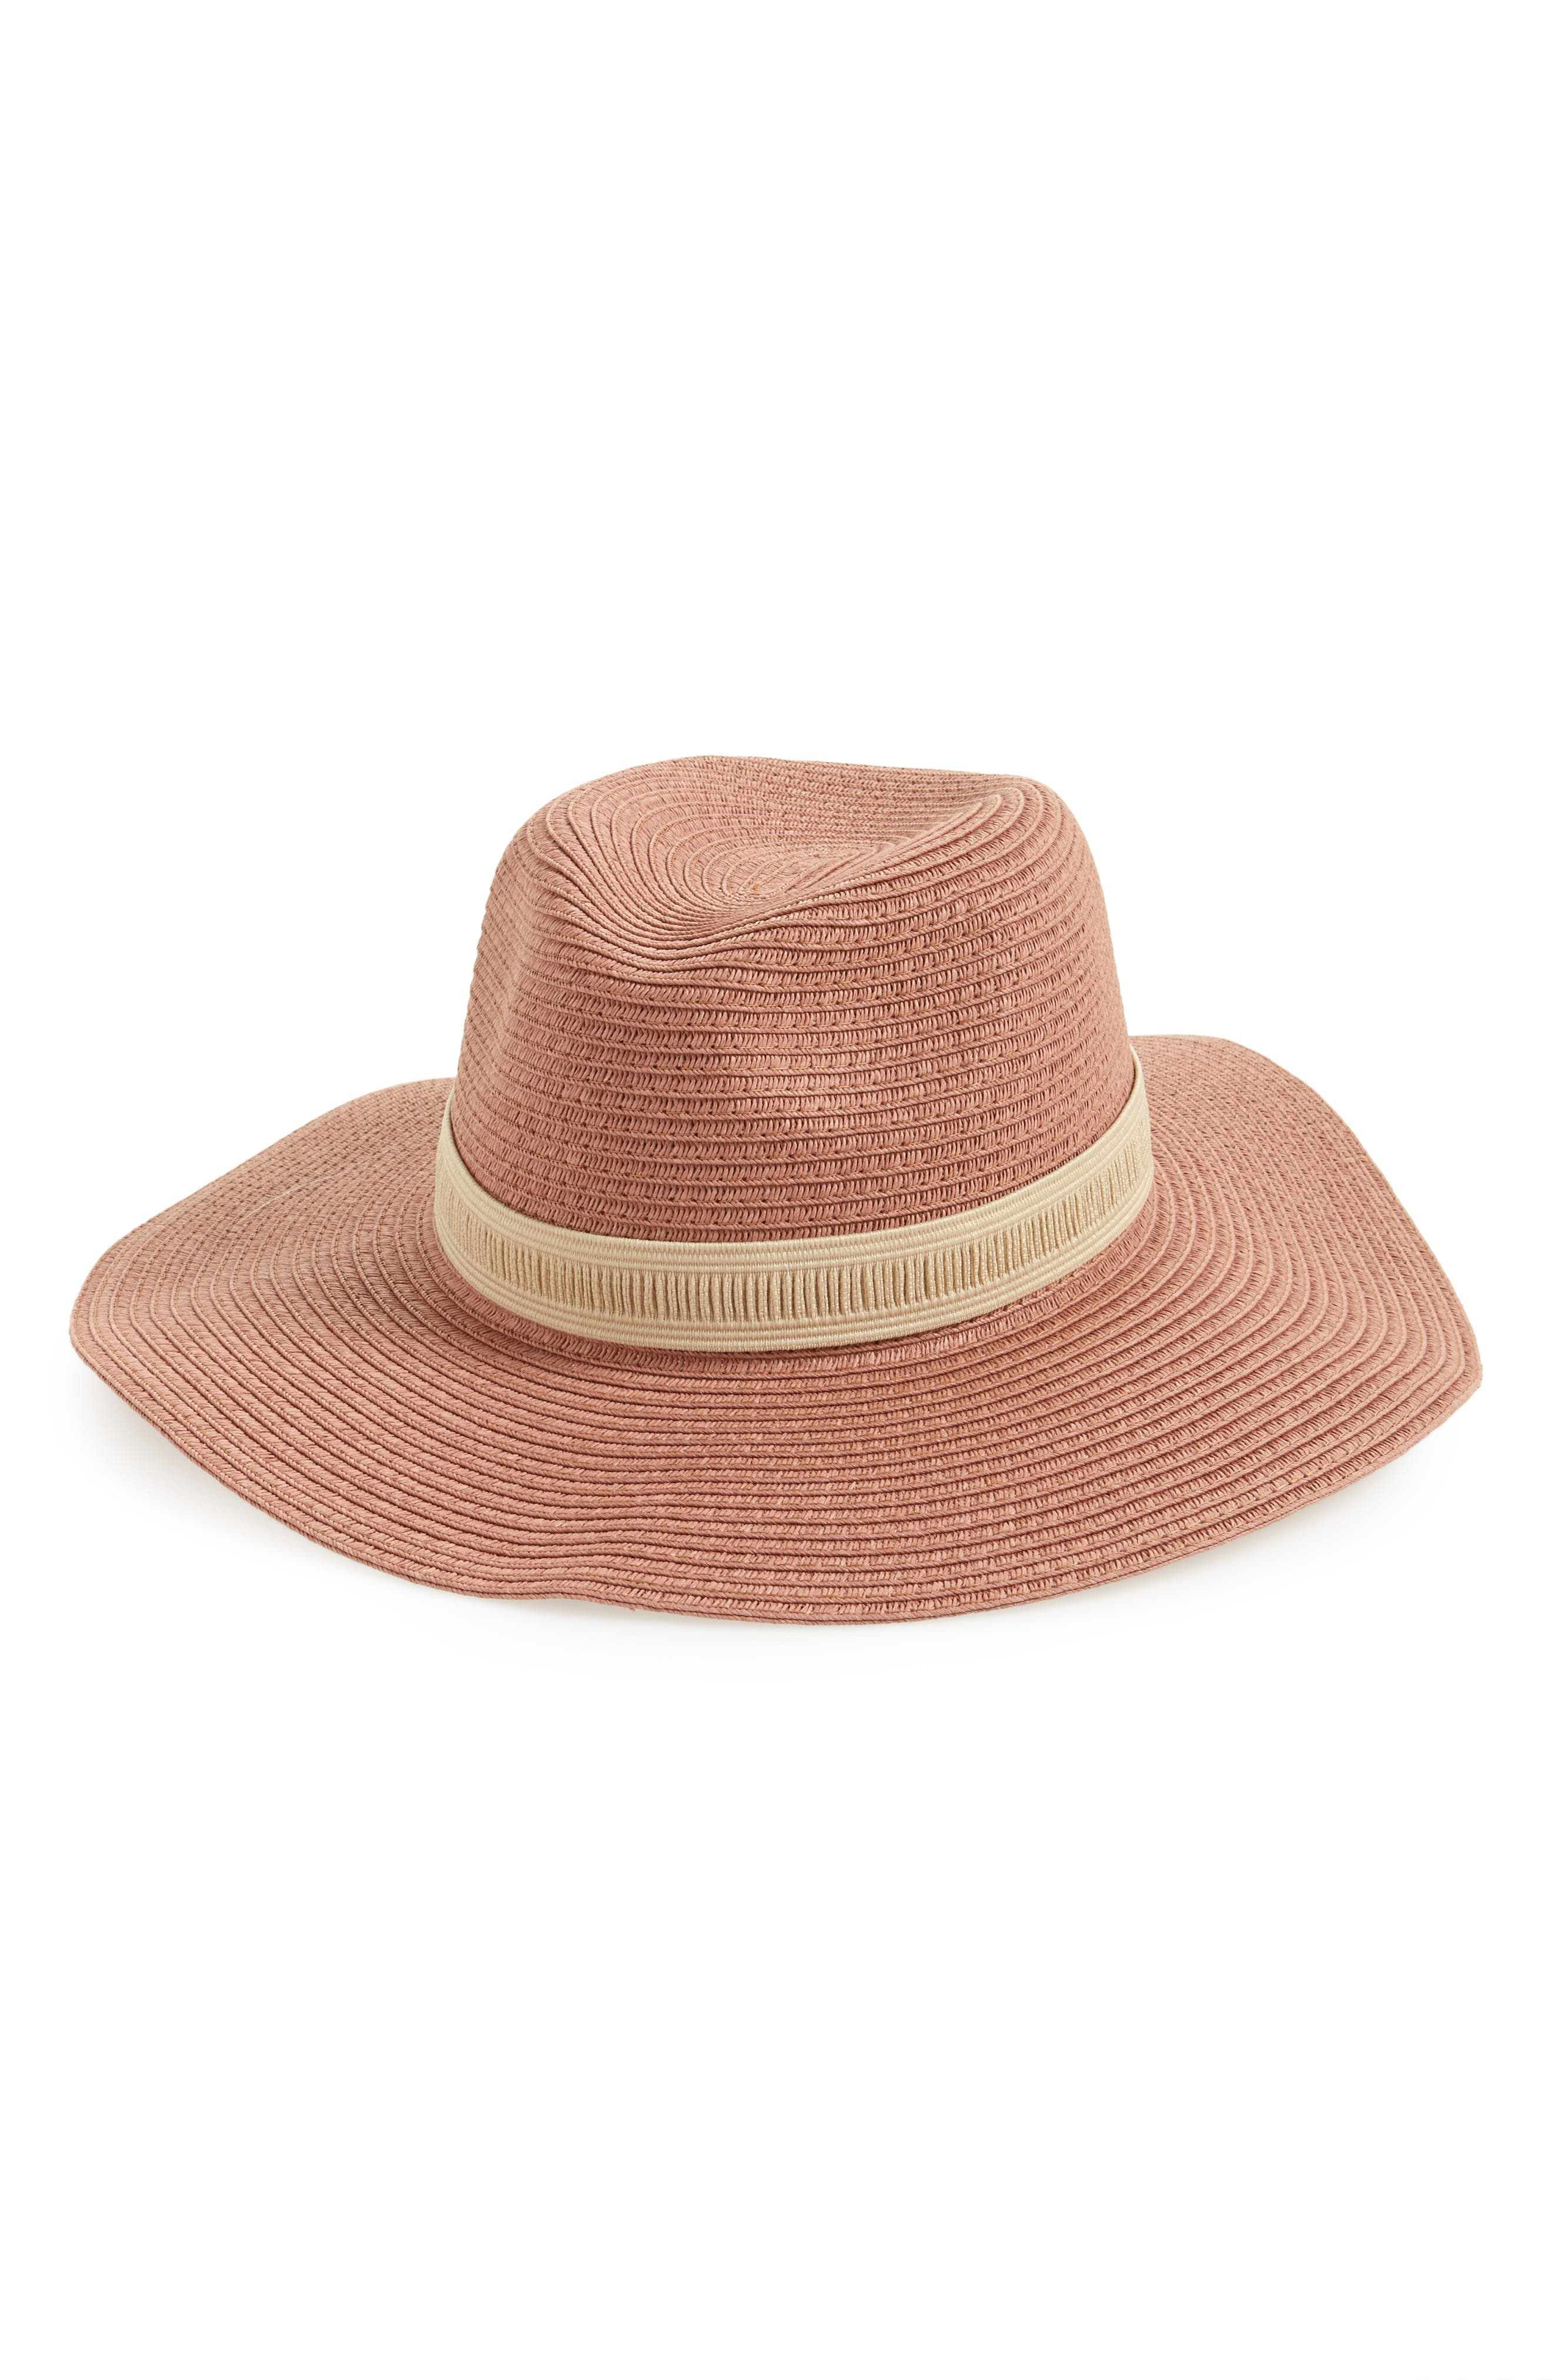 Mesa Packable Straw Hat,                             Main thumbnail 1, color,                             Dried Coral Straw